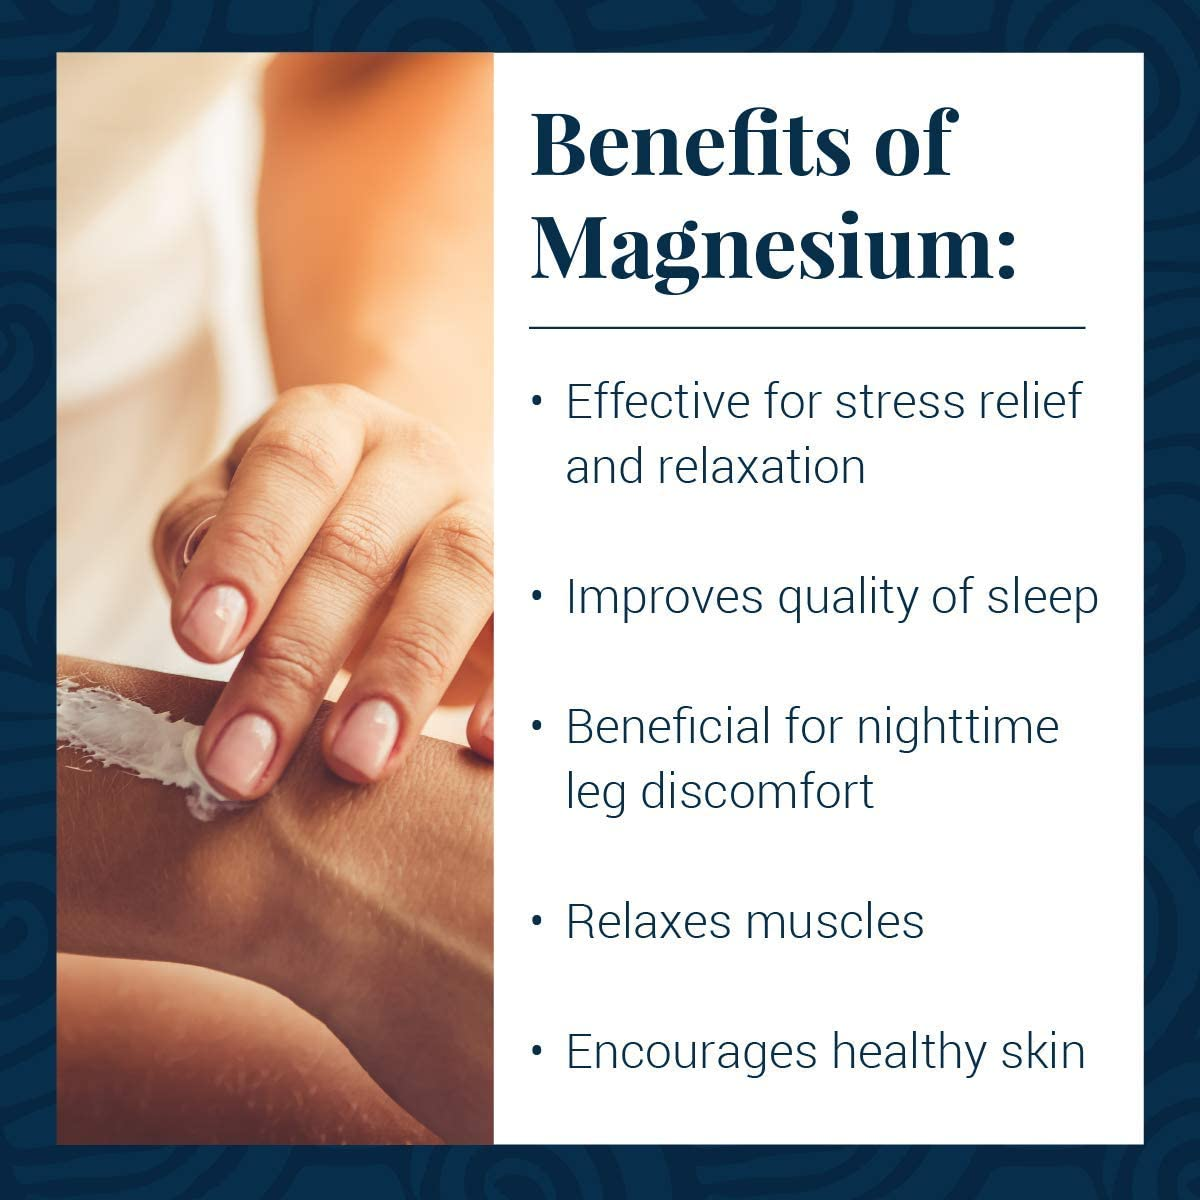 Ancient Minerals Magnesium Lotion ULTRA with MSM - Pure Genuine Zechstein Magnesium Lotion Supplement with MSM for Topical Application (5oz) : Beauty